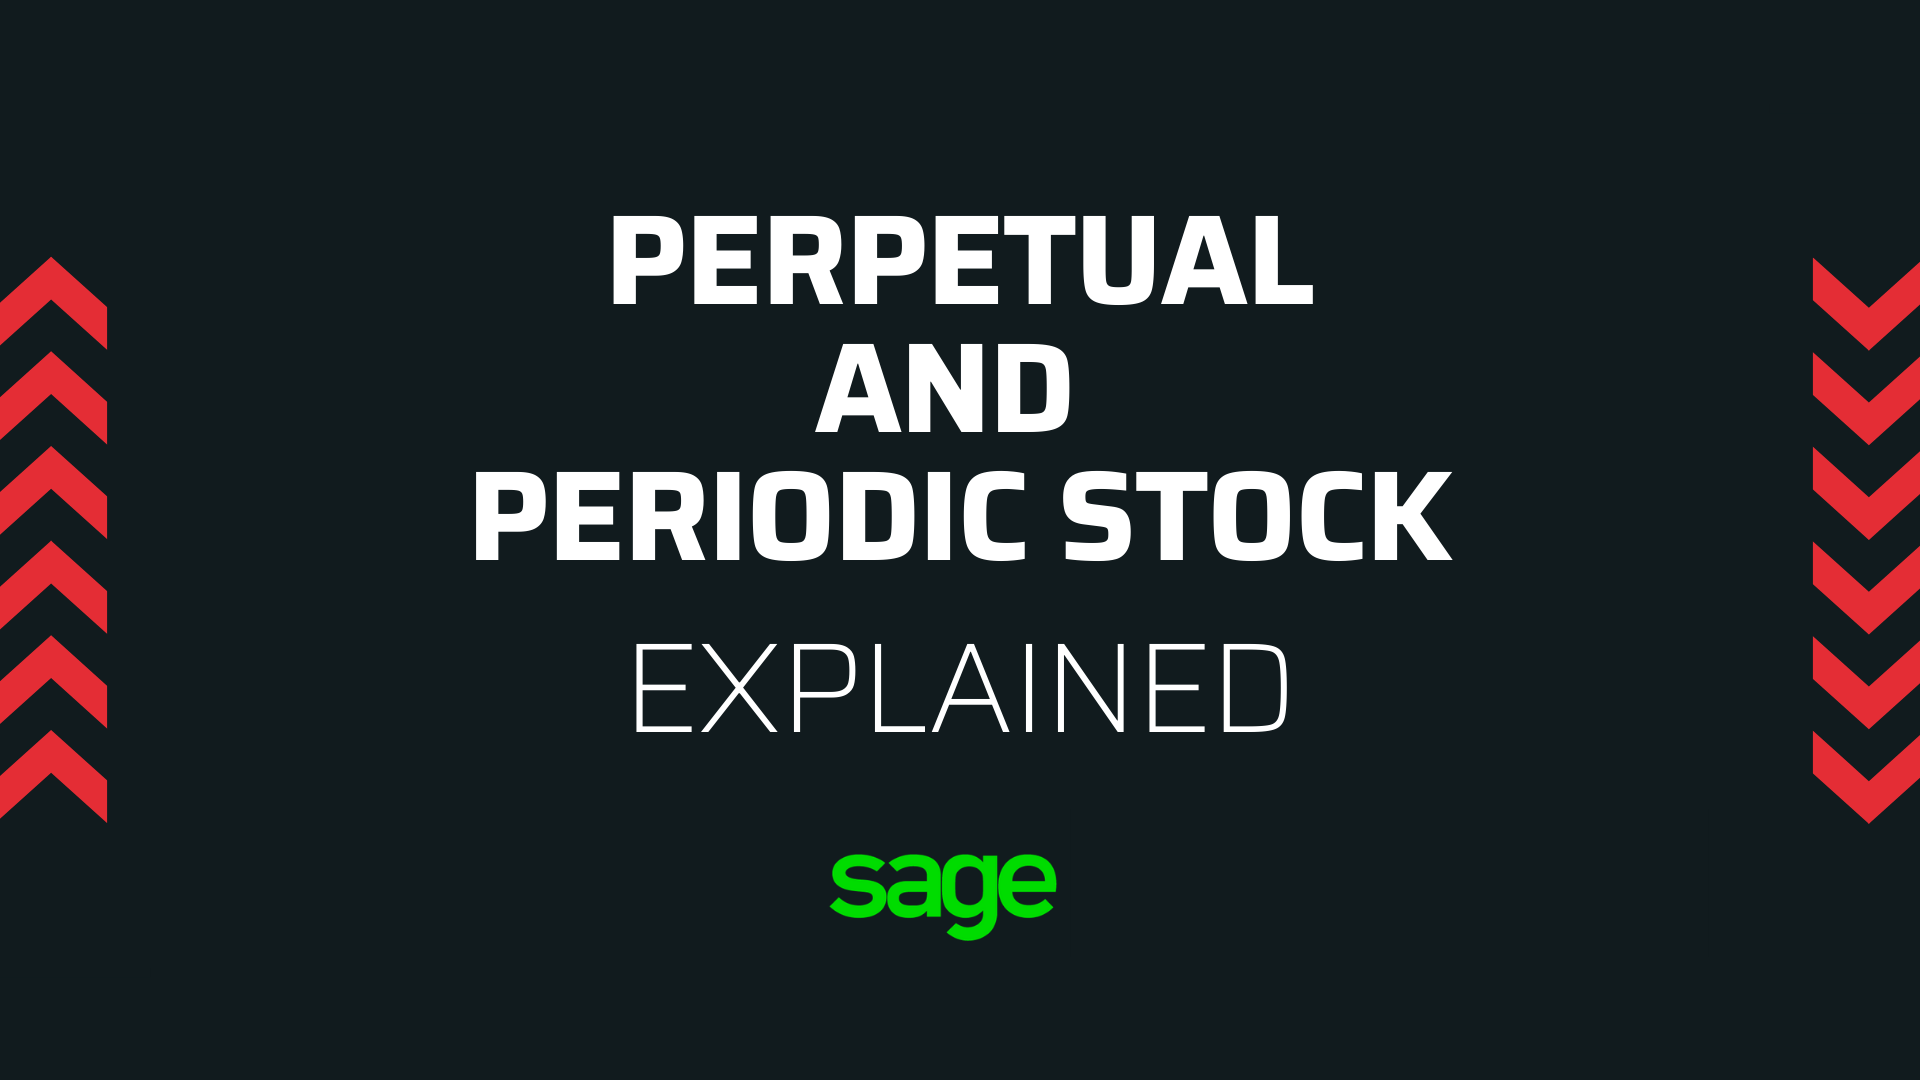 Perpetual and Periodic Stock